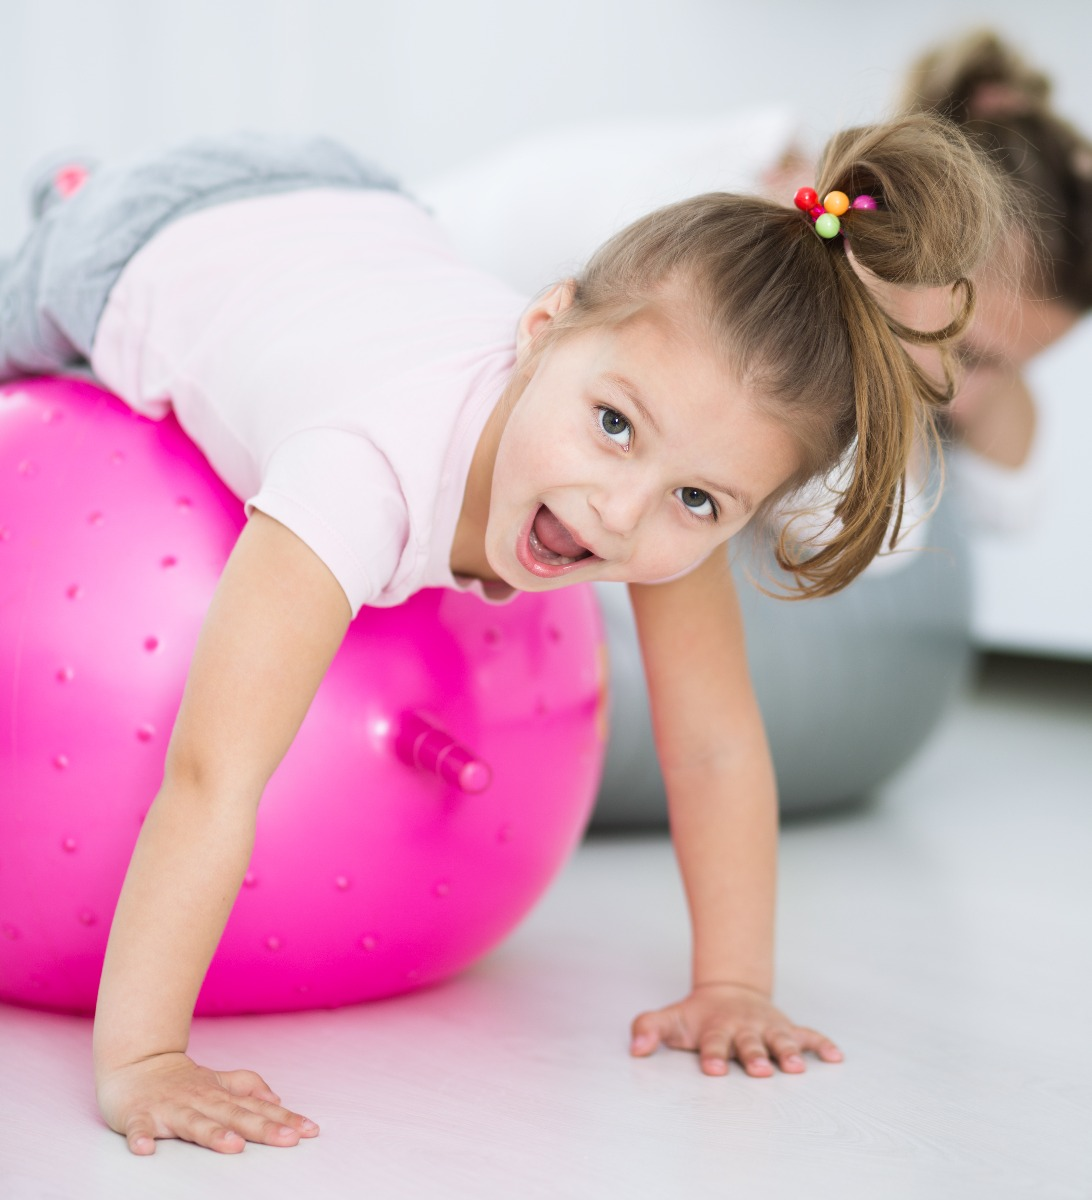 child on exercise ball